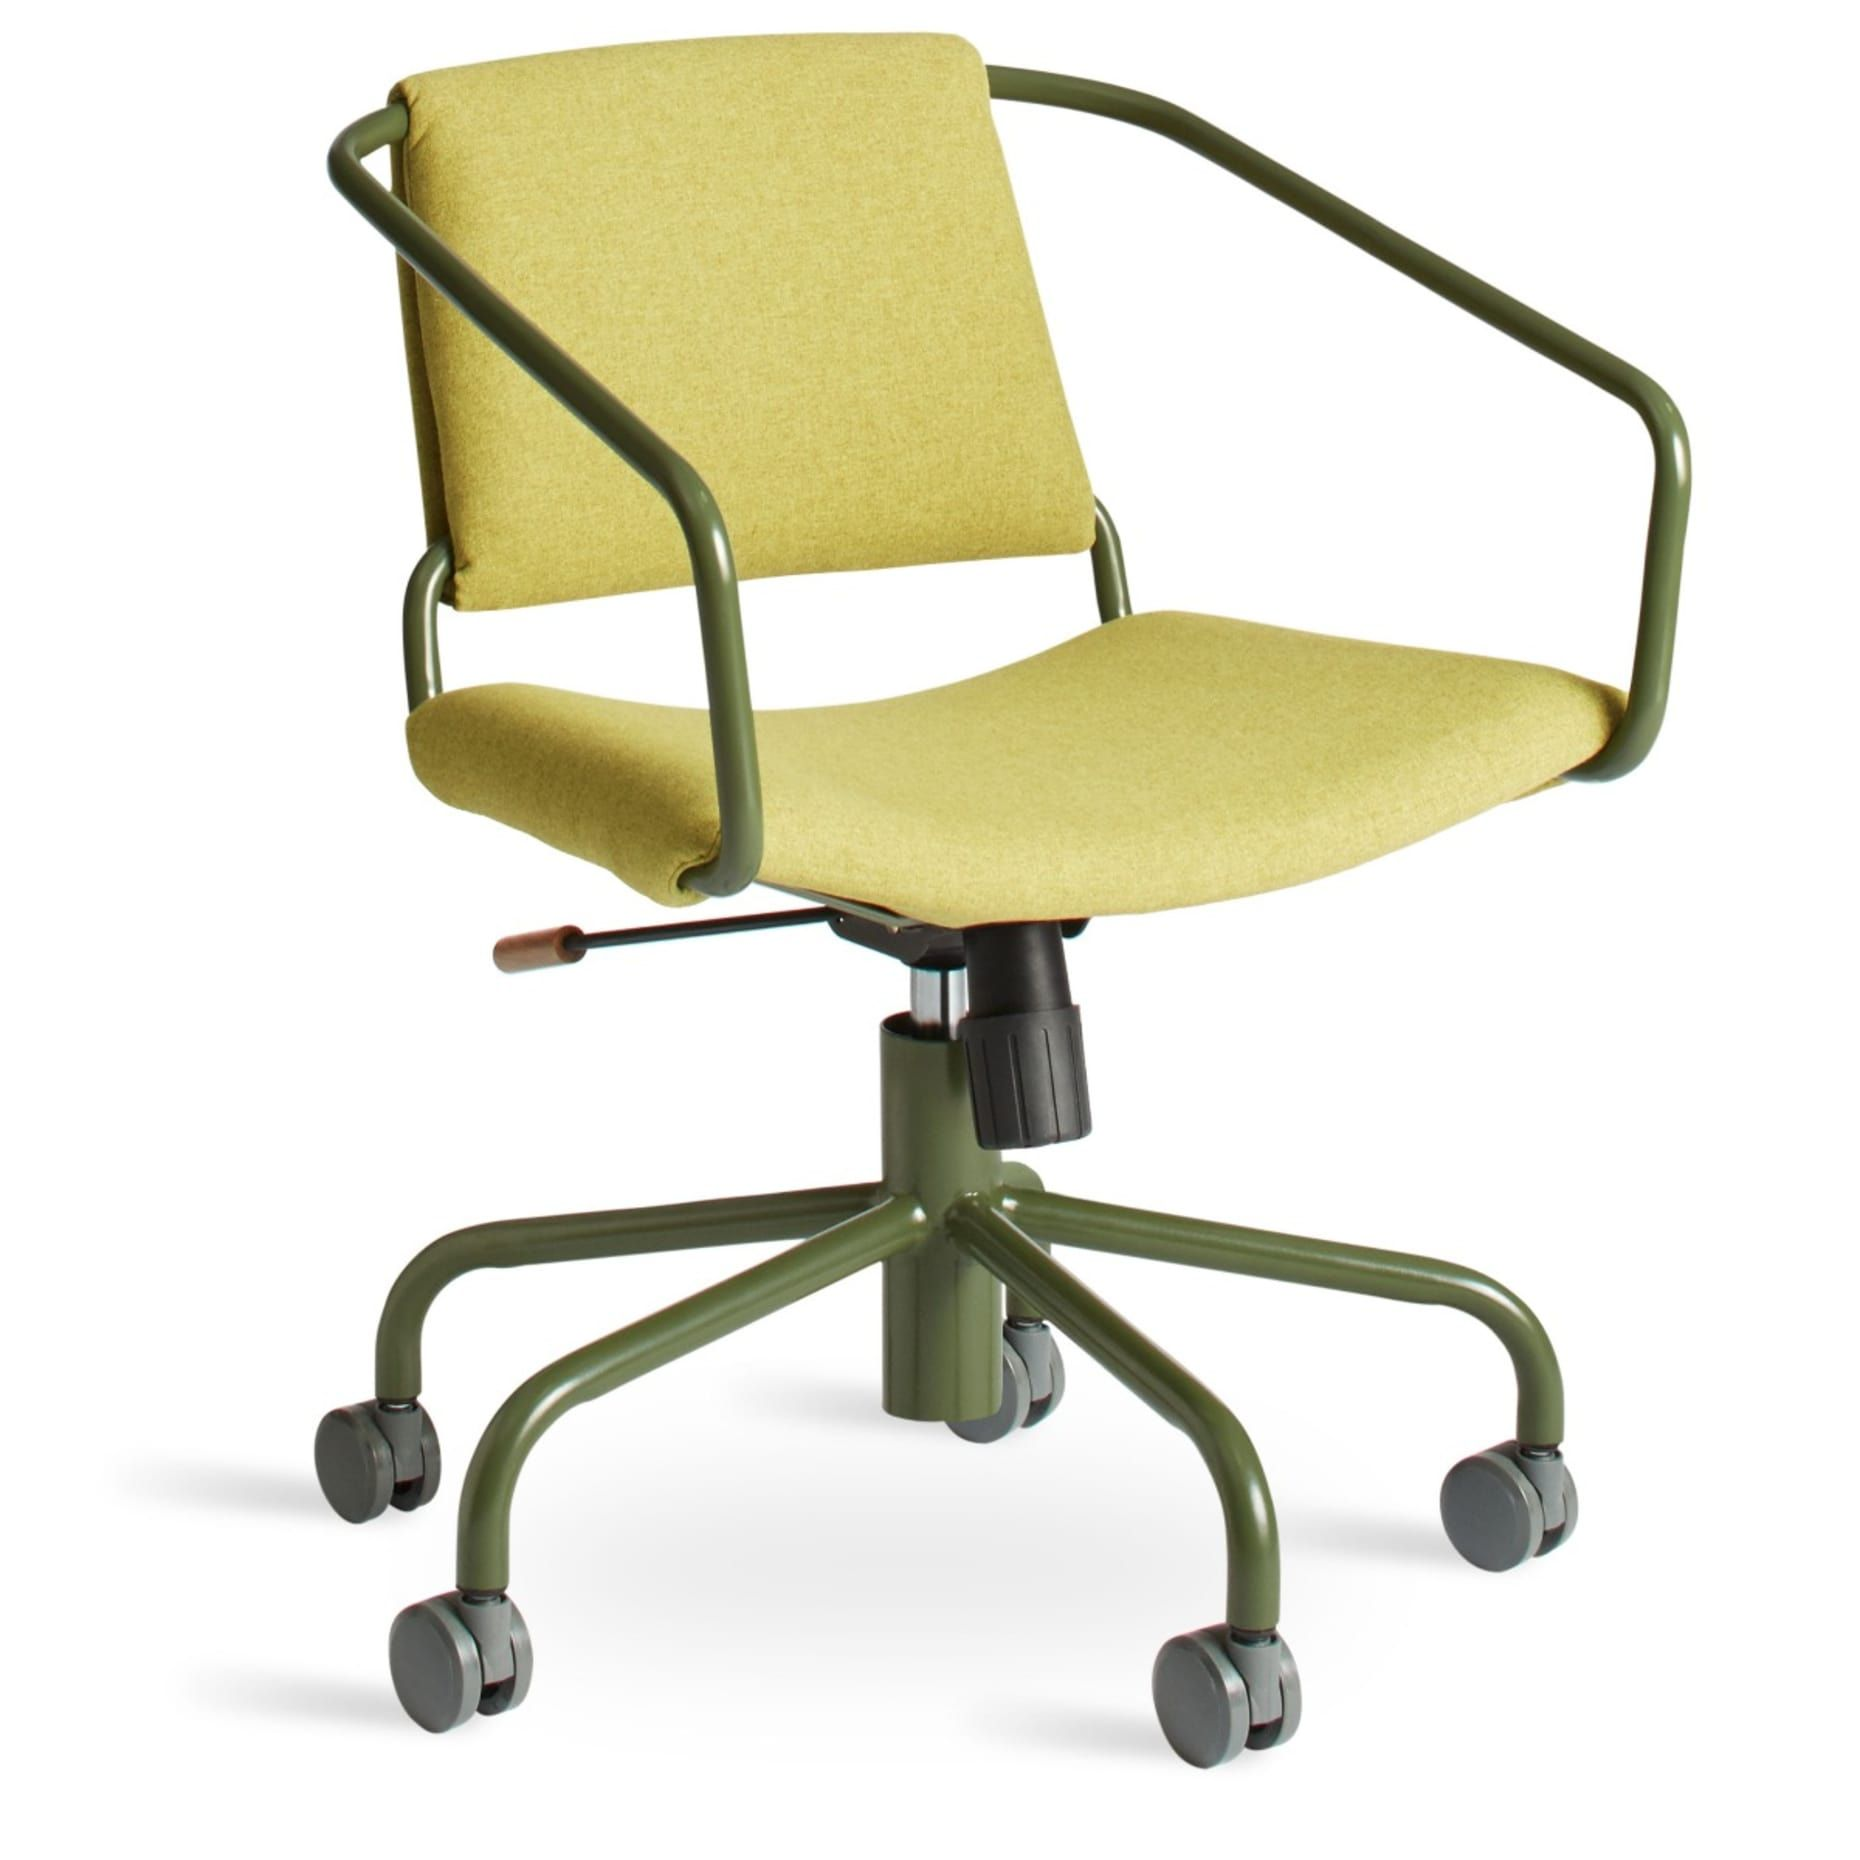 Daily Task Chair Modern Office Chair Task Chair Upholstered